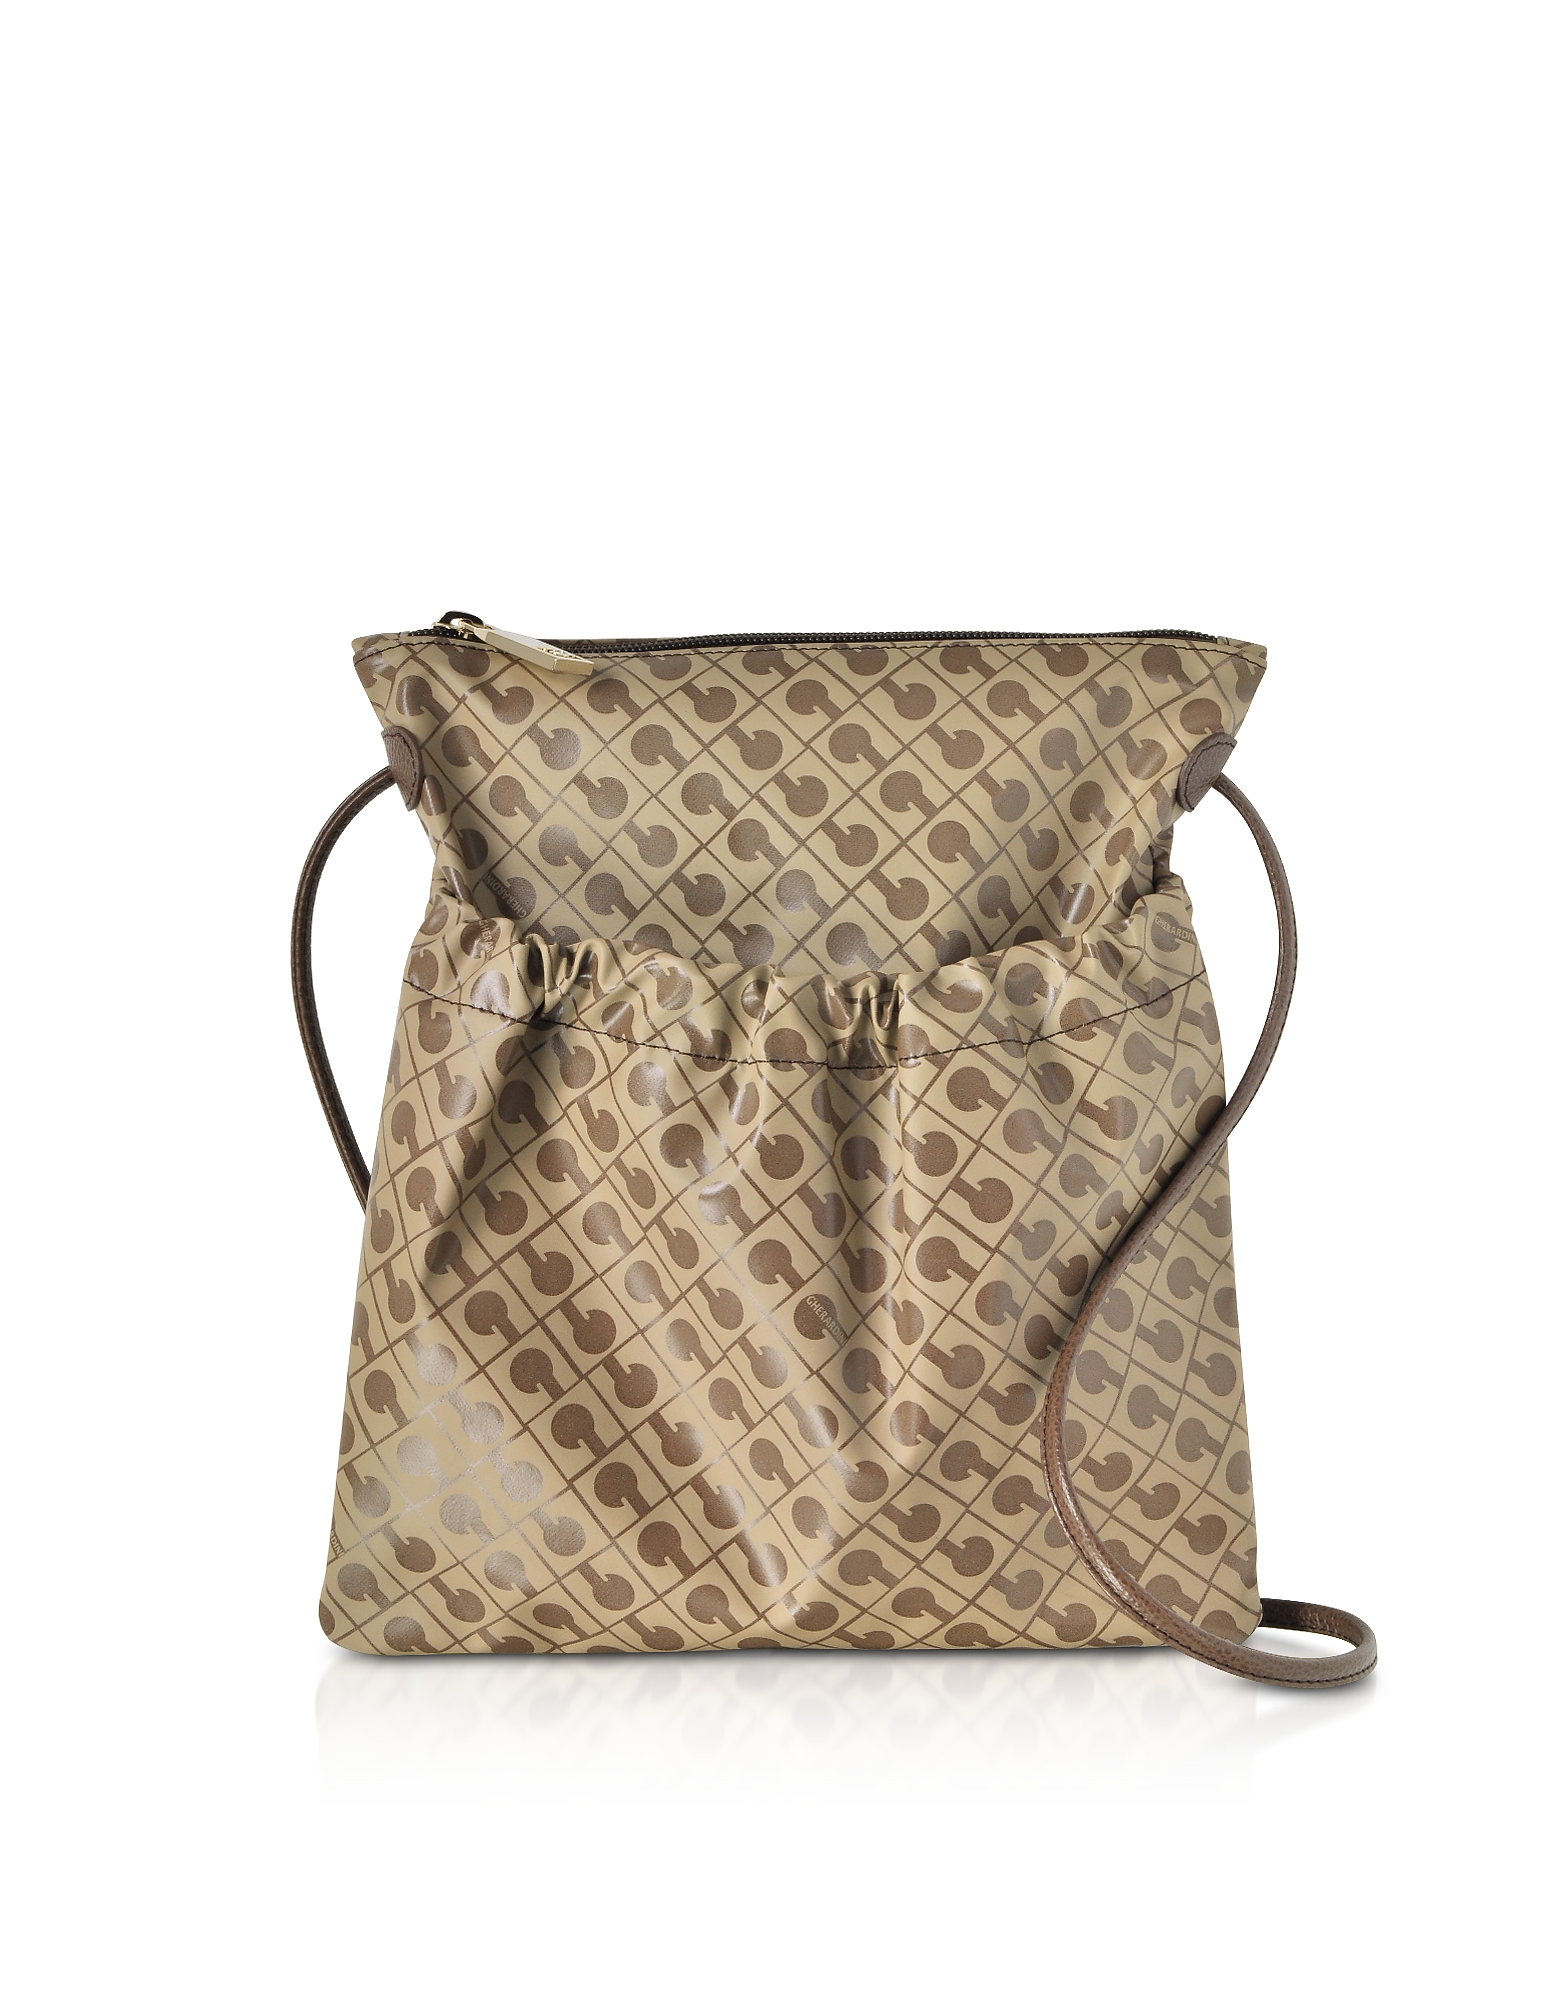 Gherardini Handbags, Signature Coated Canvas and Leather Softy Crossbody Bag